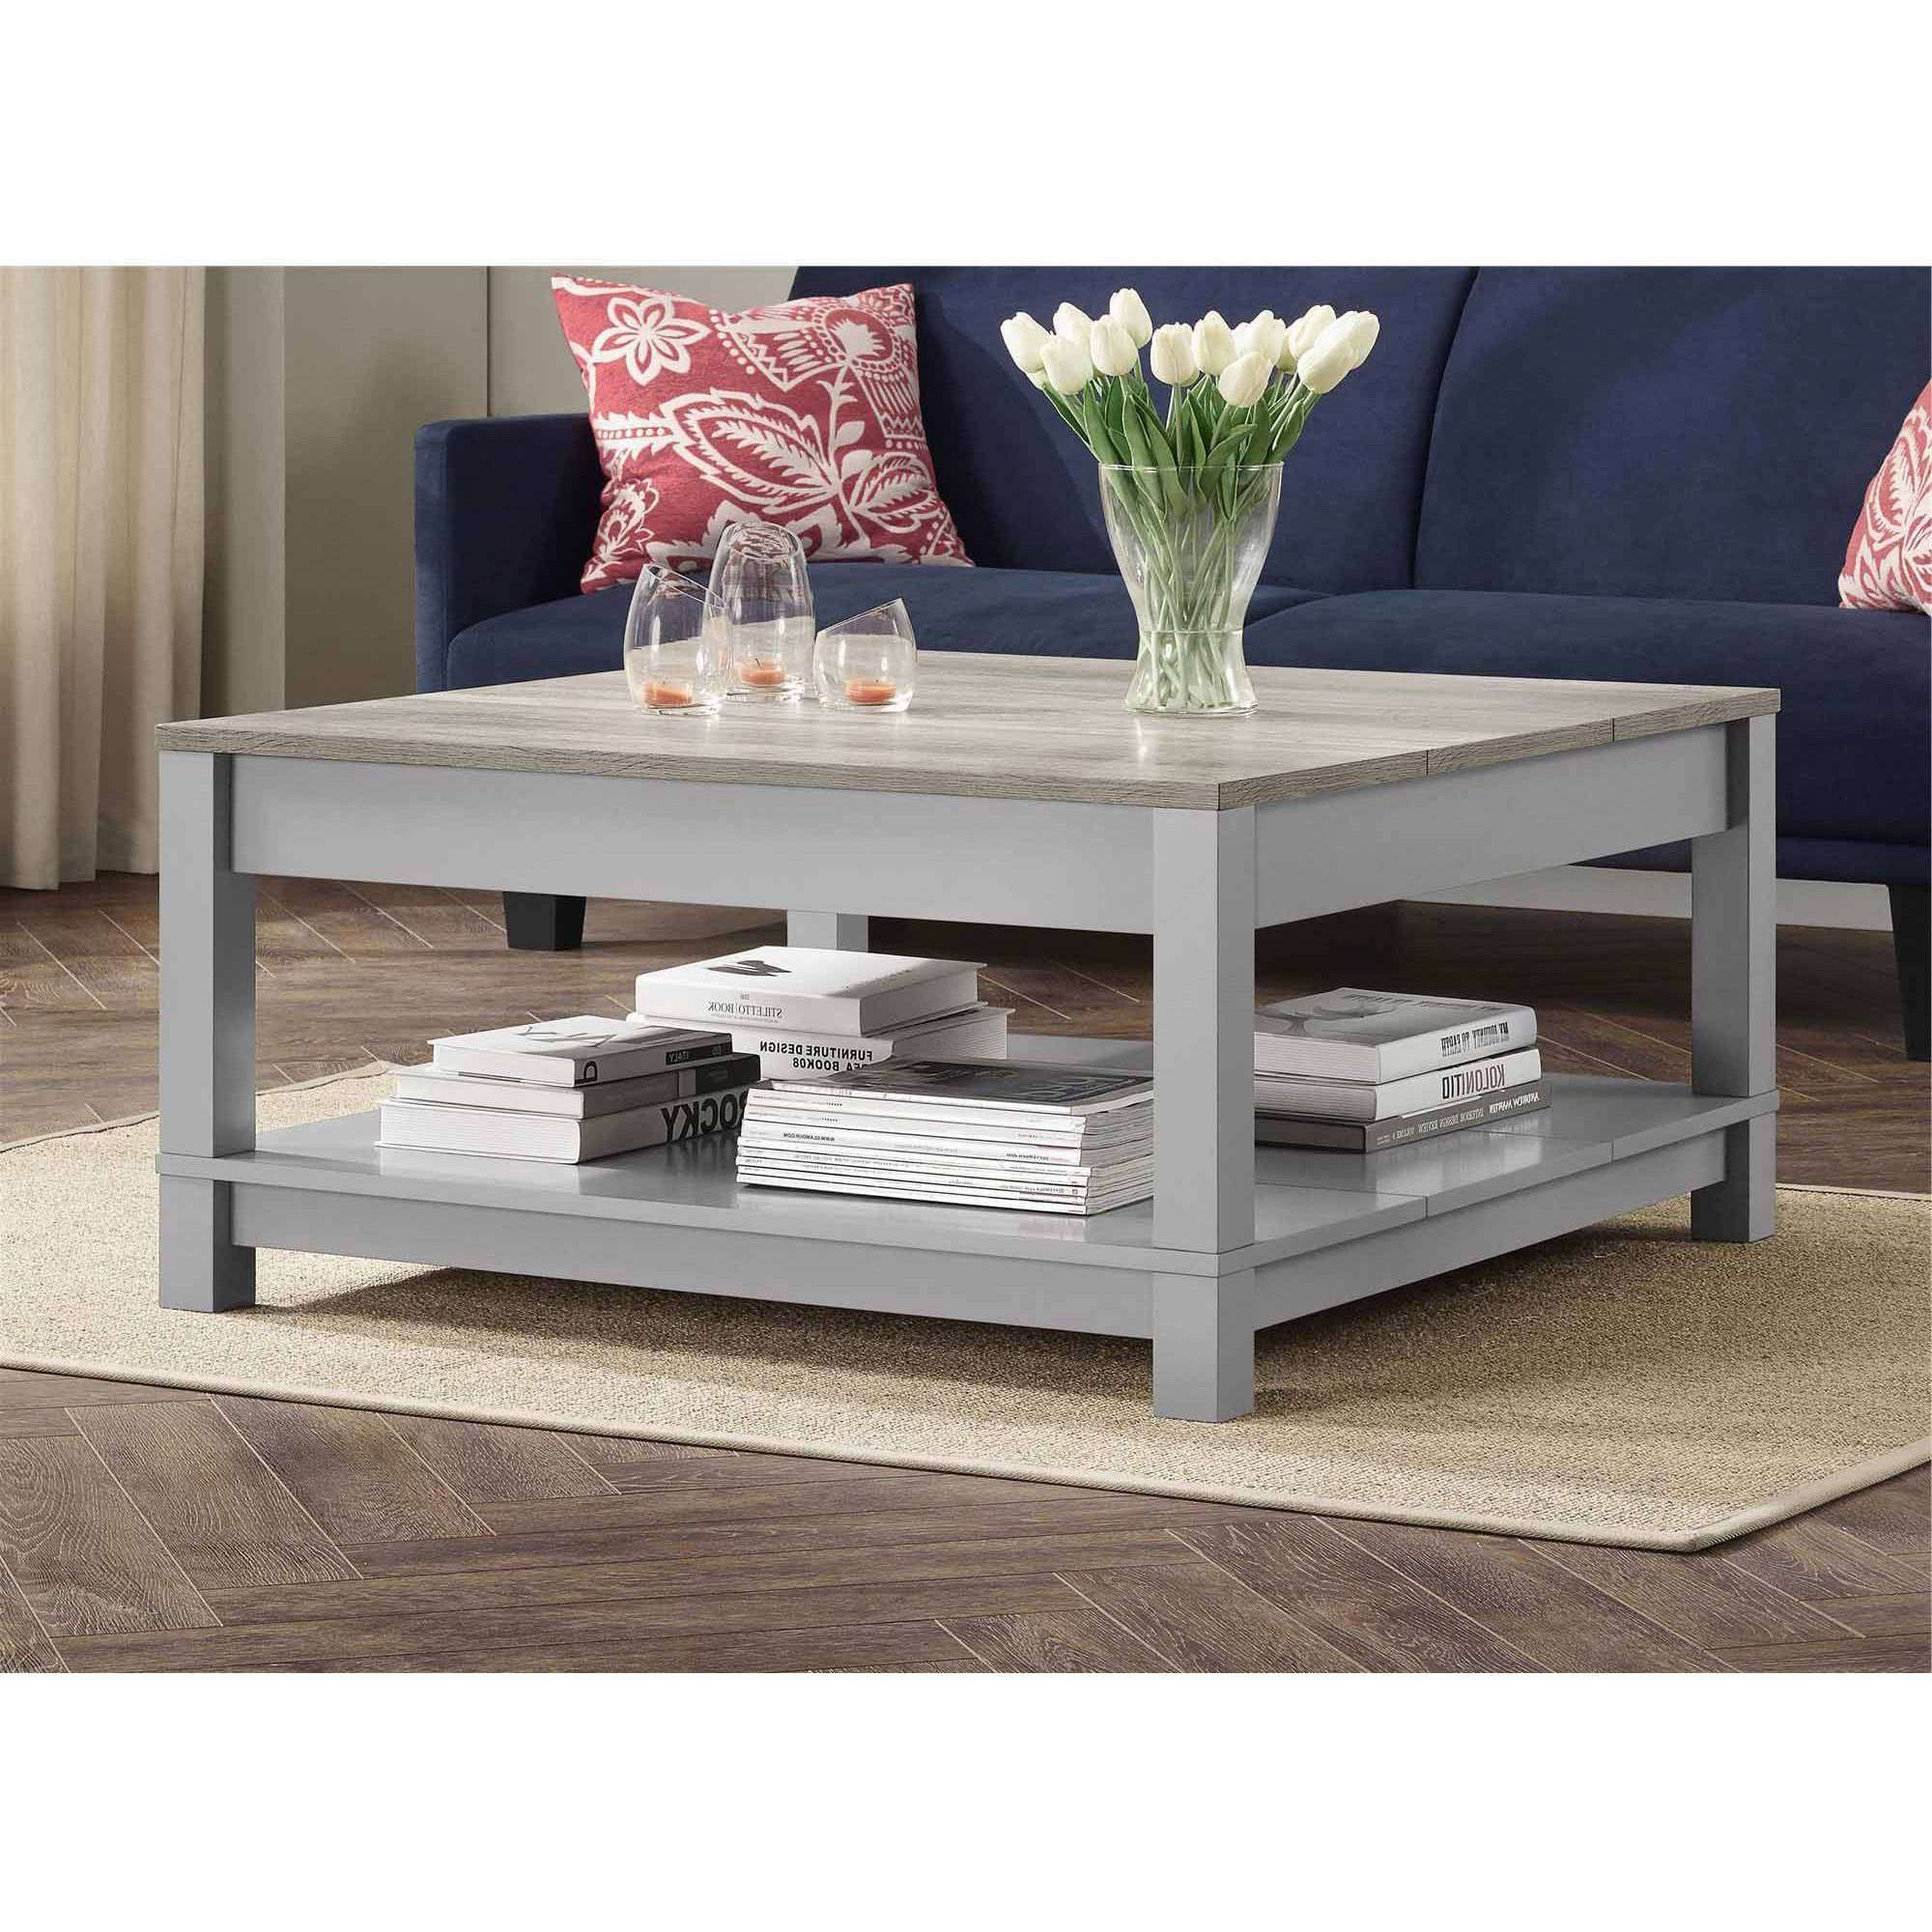 Better Homes And Gardens Langley Bay Coffee Table, Multiple Colors Inside Most Up To Date Wooden Garden Coffee Tables (View 14 of 20)